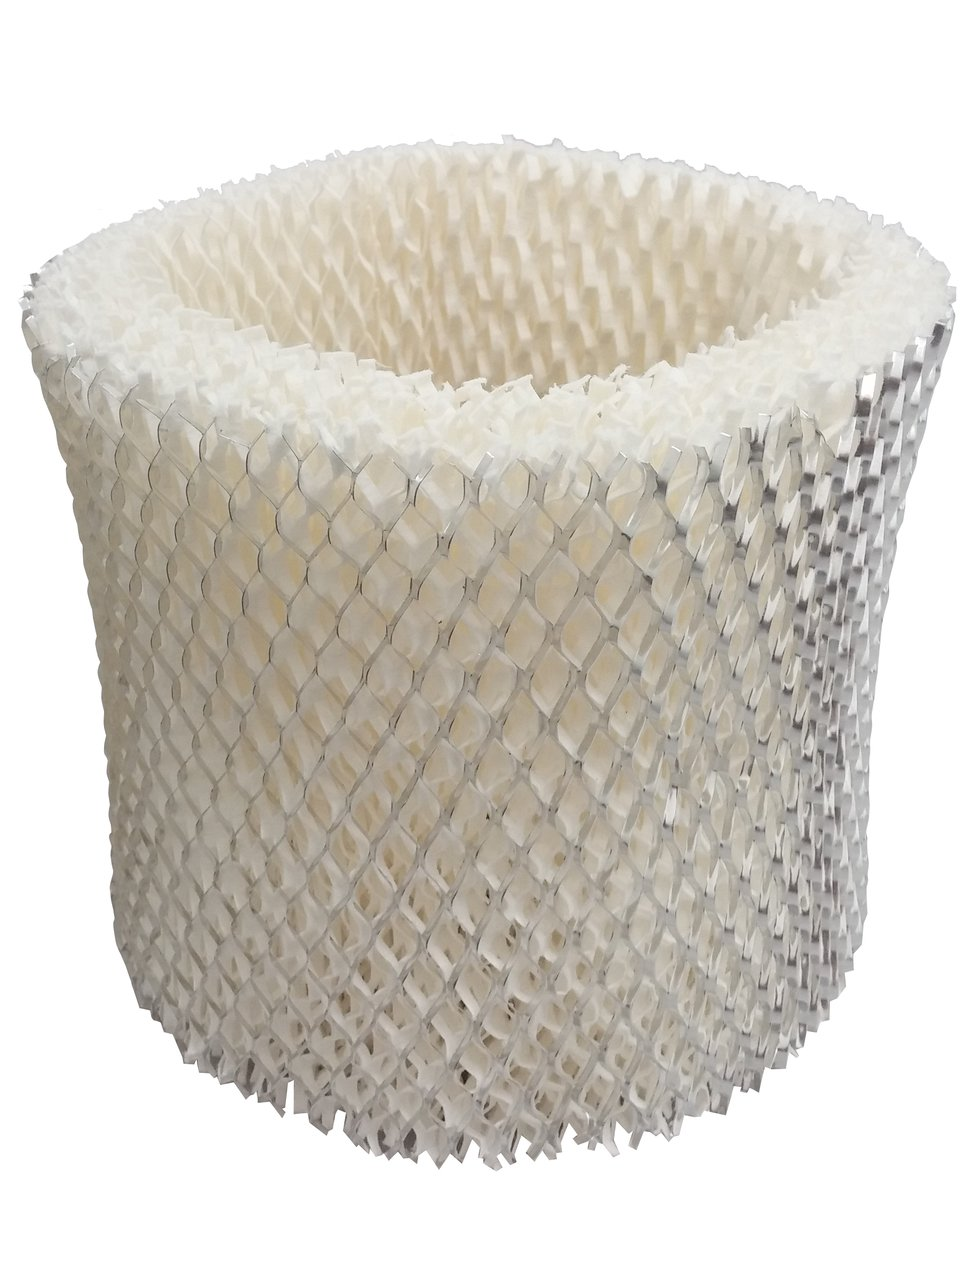 Humidifier Filter for Sunbeam SCM1746 (3-Pack)''